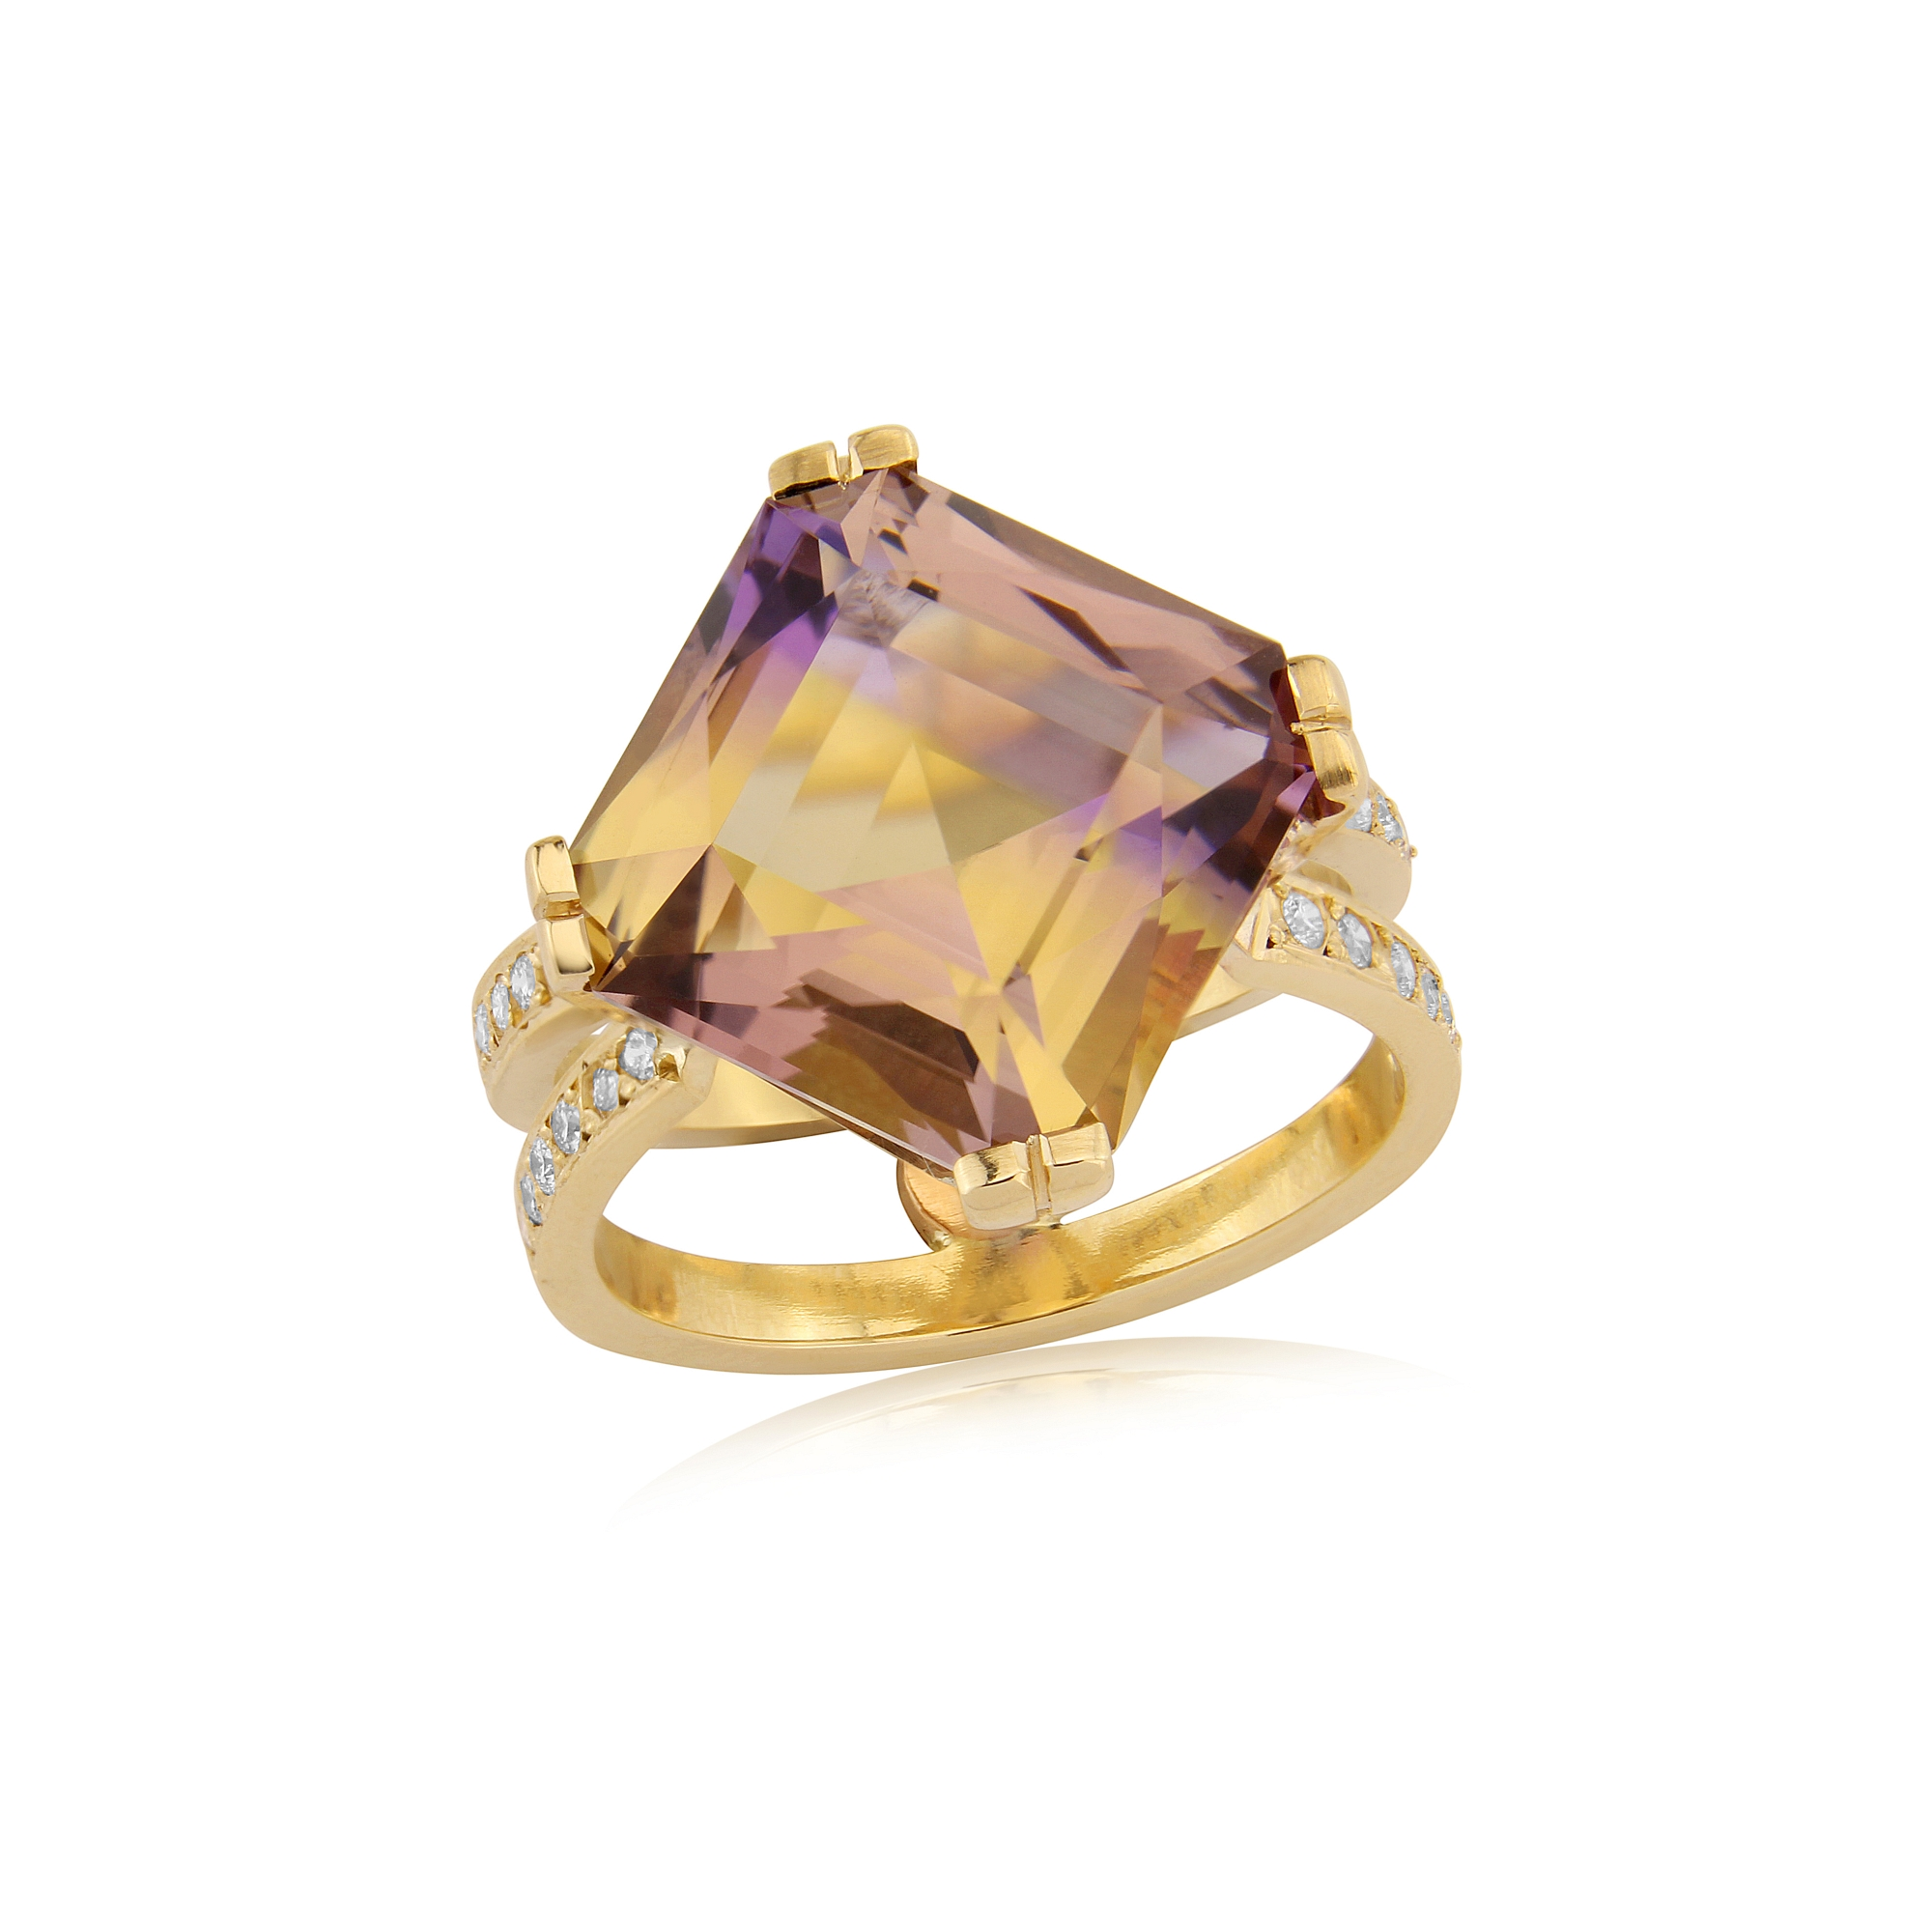 Beautiful Ametrine and Diamond dress ring hand made in Gold with a feature Diamond set at the back of the ring.